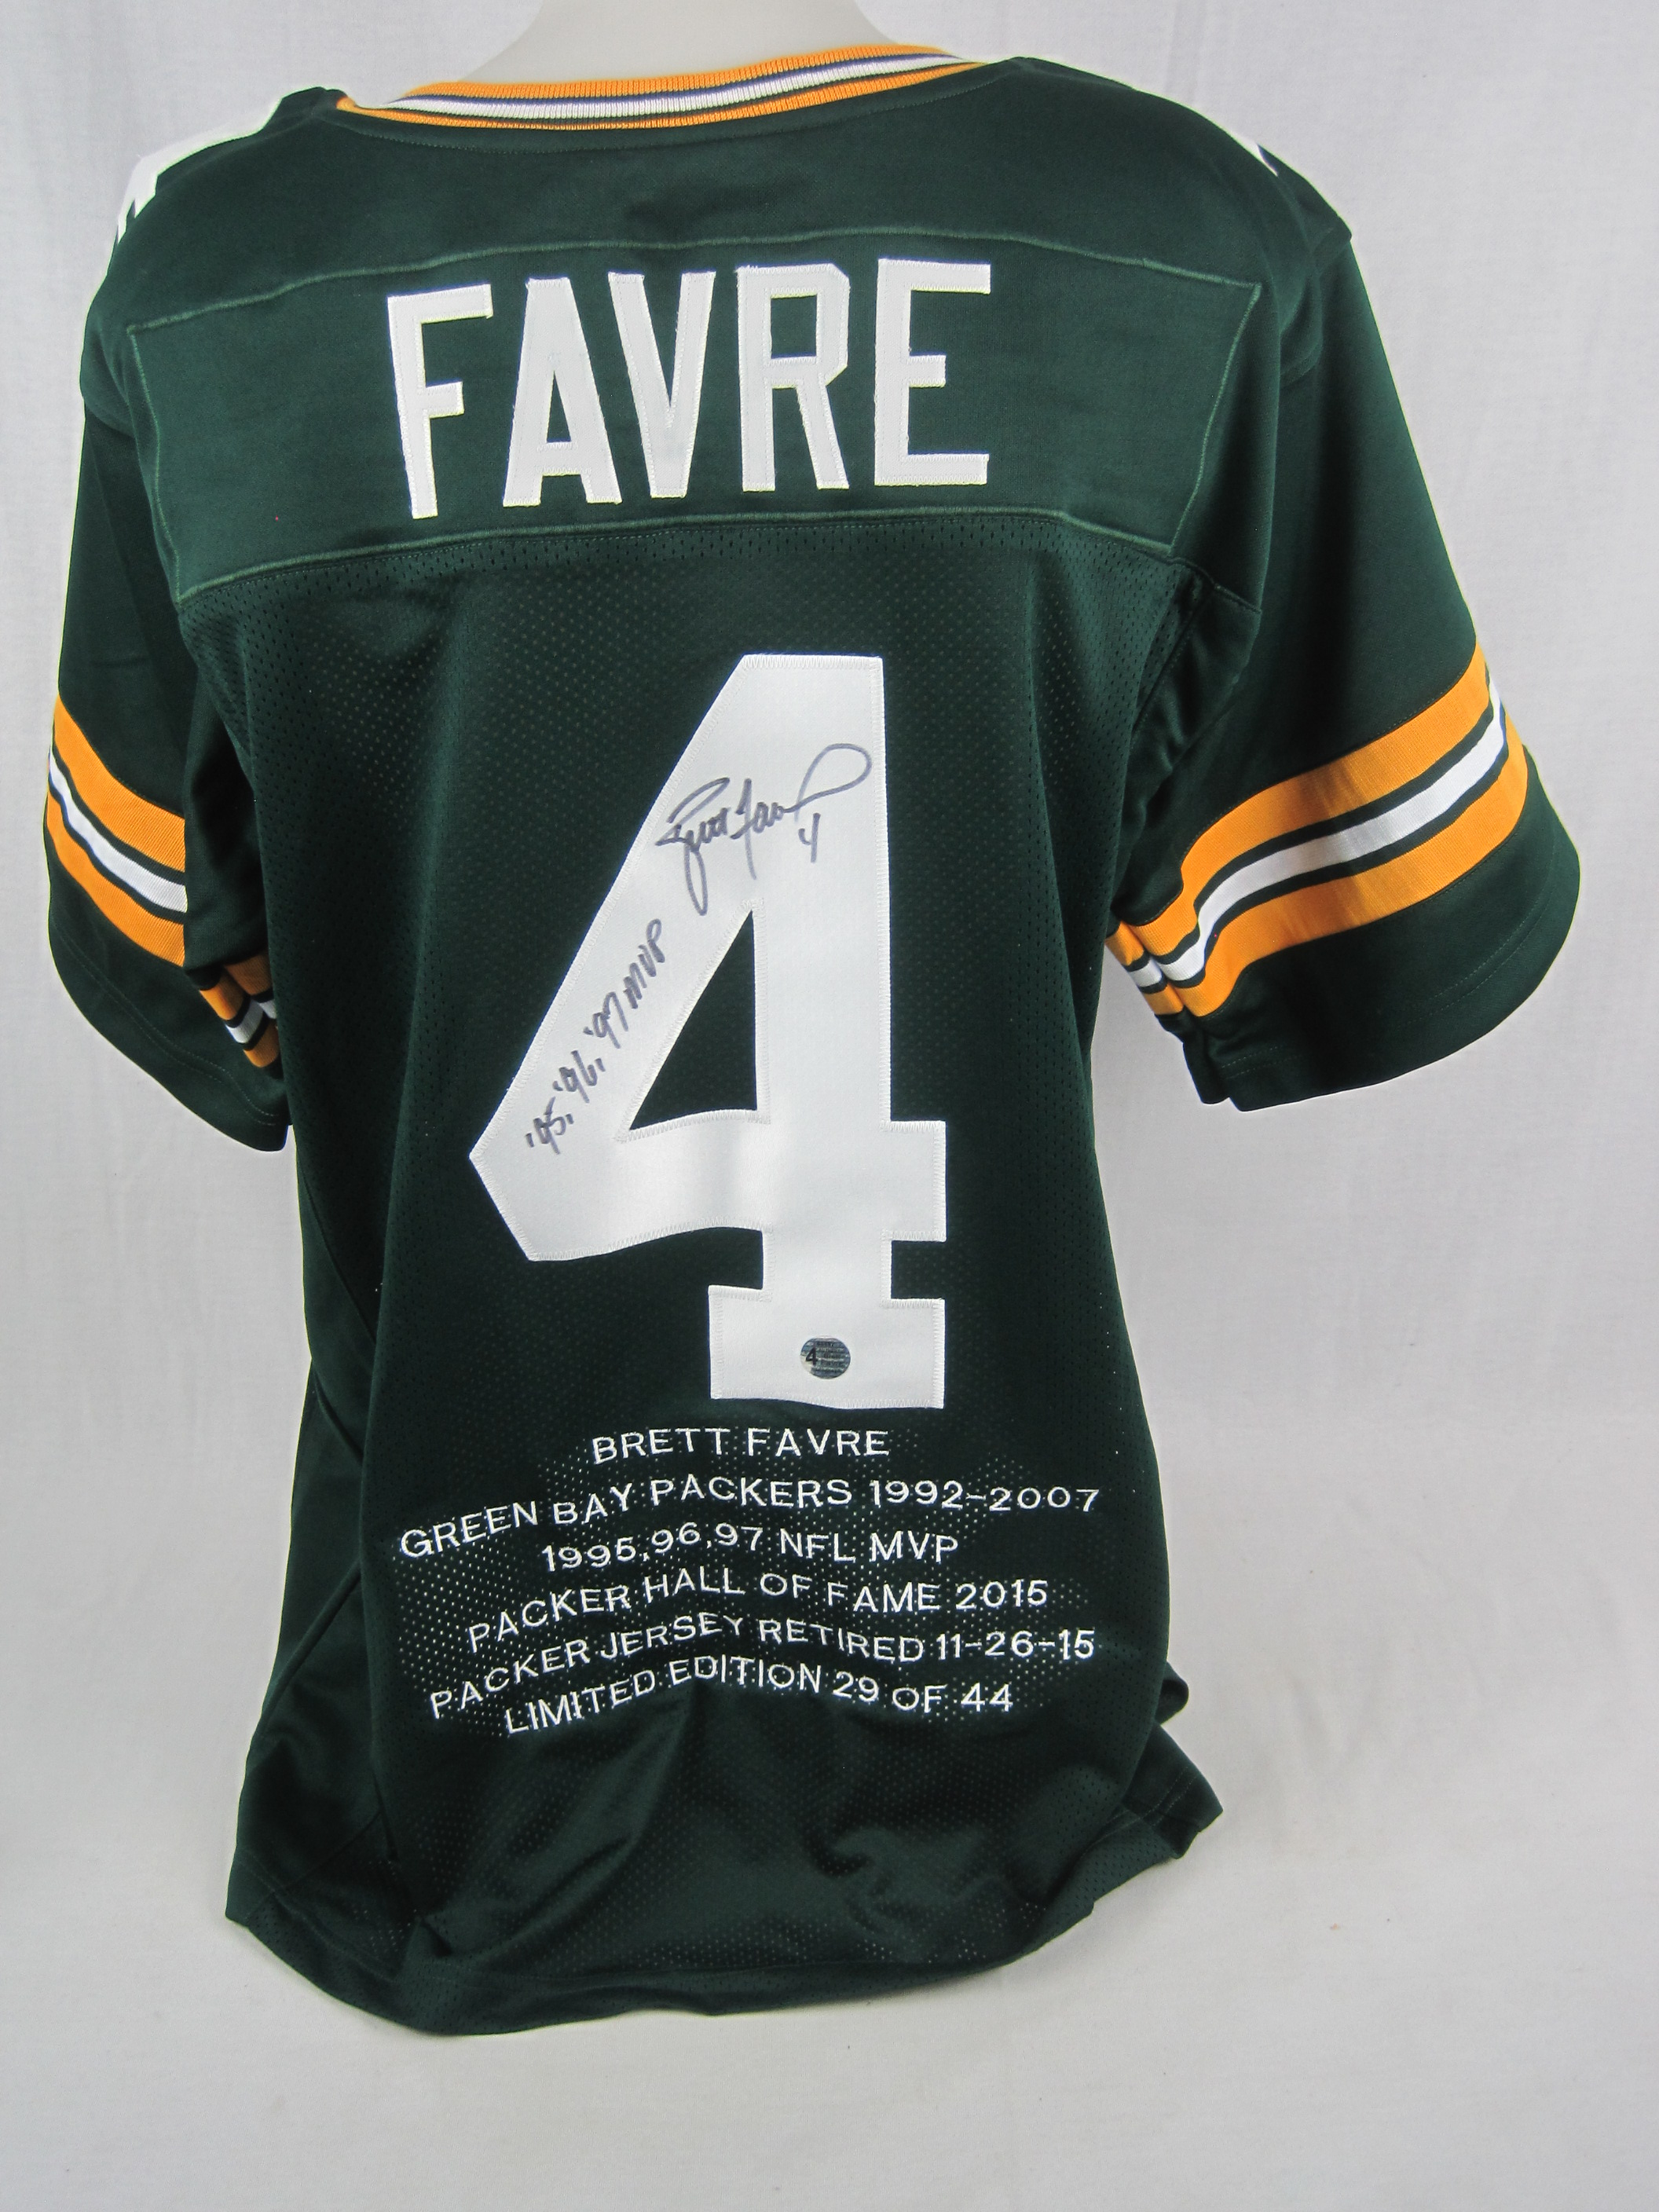 ddda21471c1 Brett Favre Autographed & Inscribed Limited Edition Green Bay Packers Jersey  ...